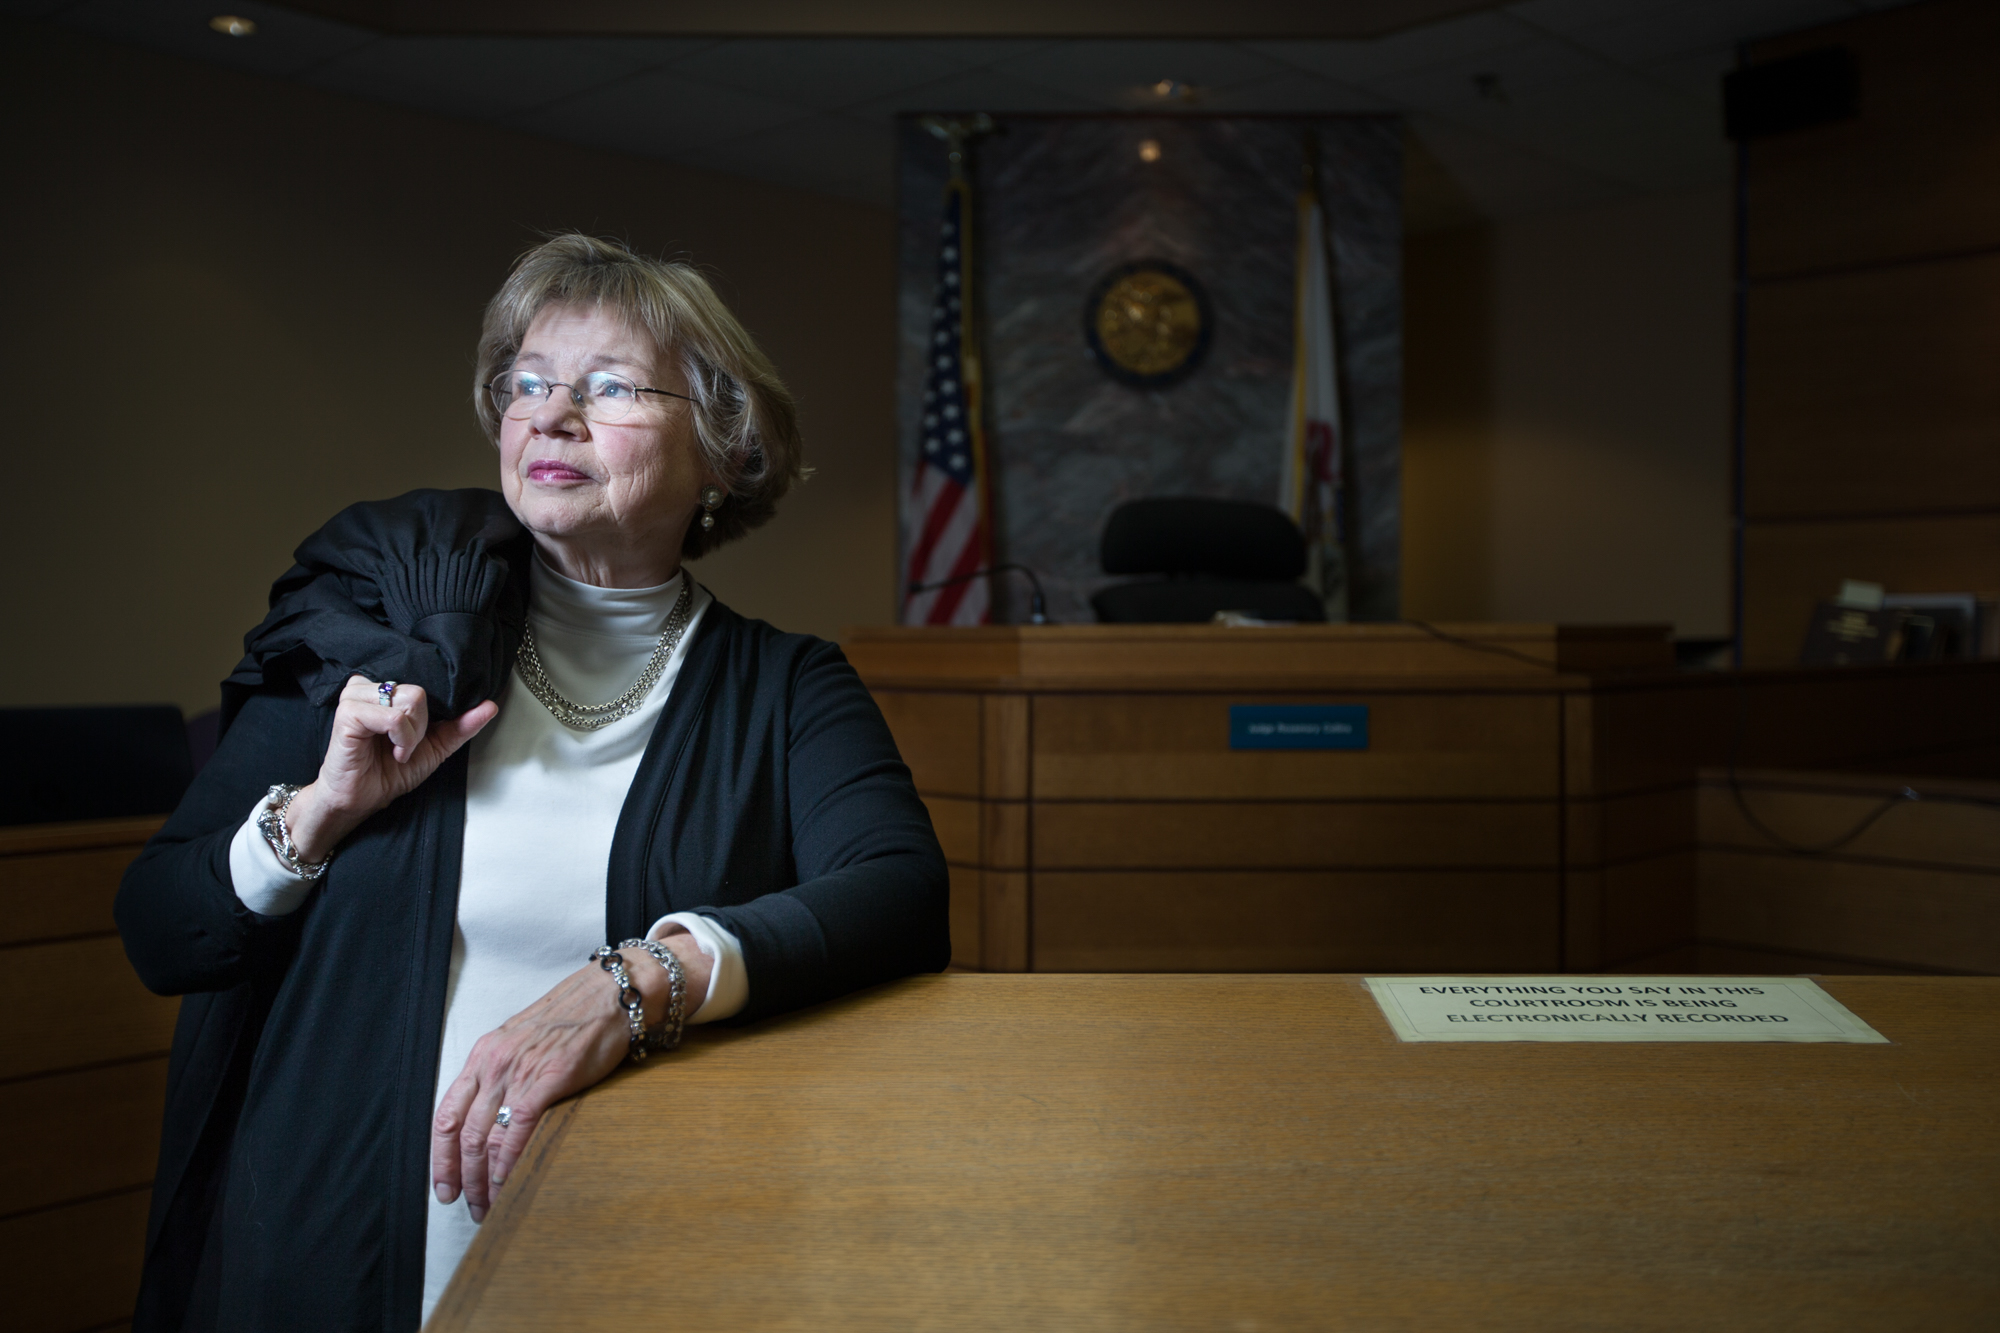 Judge Rosemary Collins poses for a portrait in her courtroom of almost 30 years on Tuesday, Nov. 20, 2018, at the Winnebago County Circuit Courthouse in Rockford.